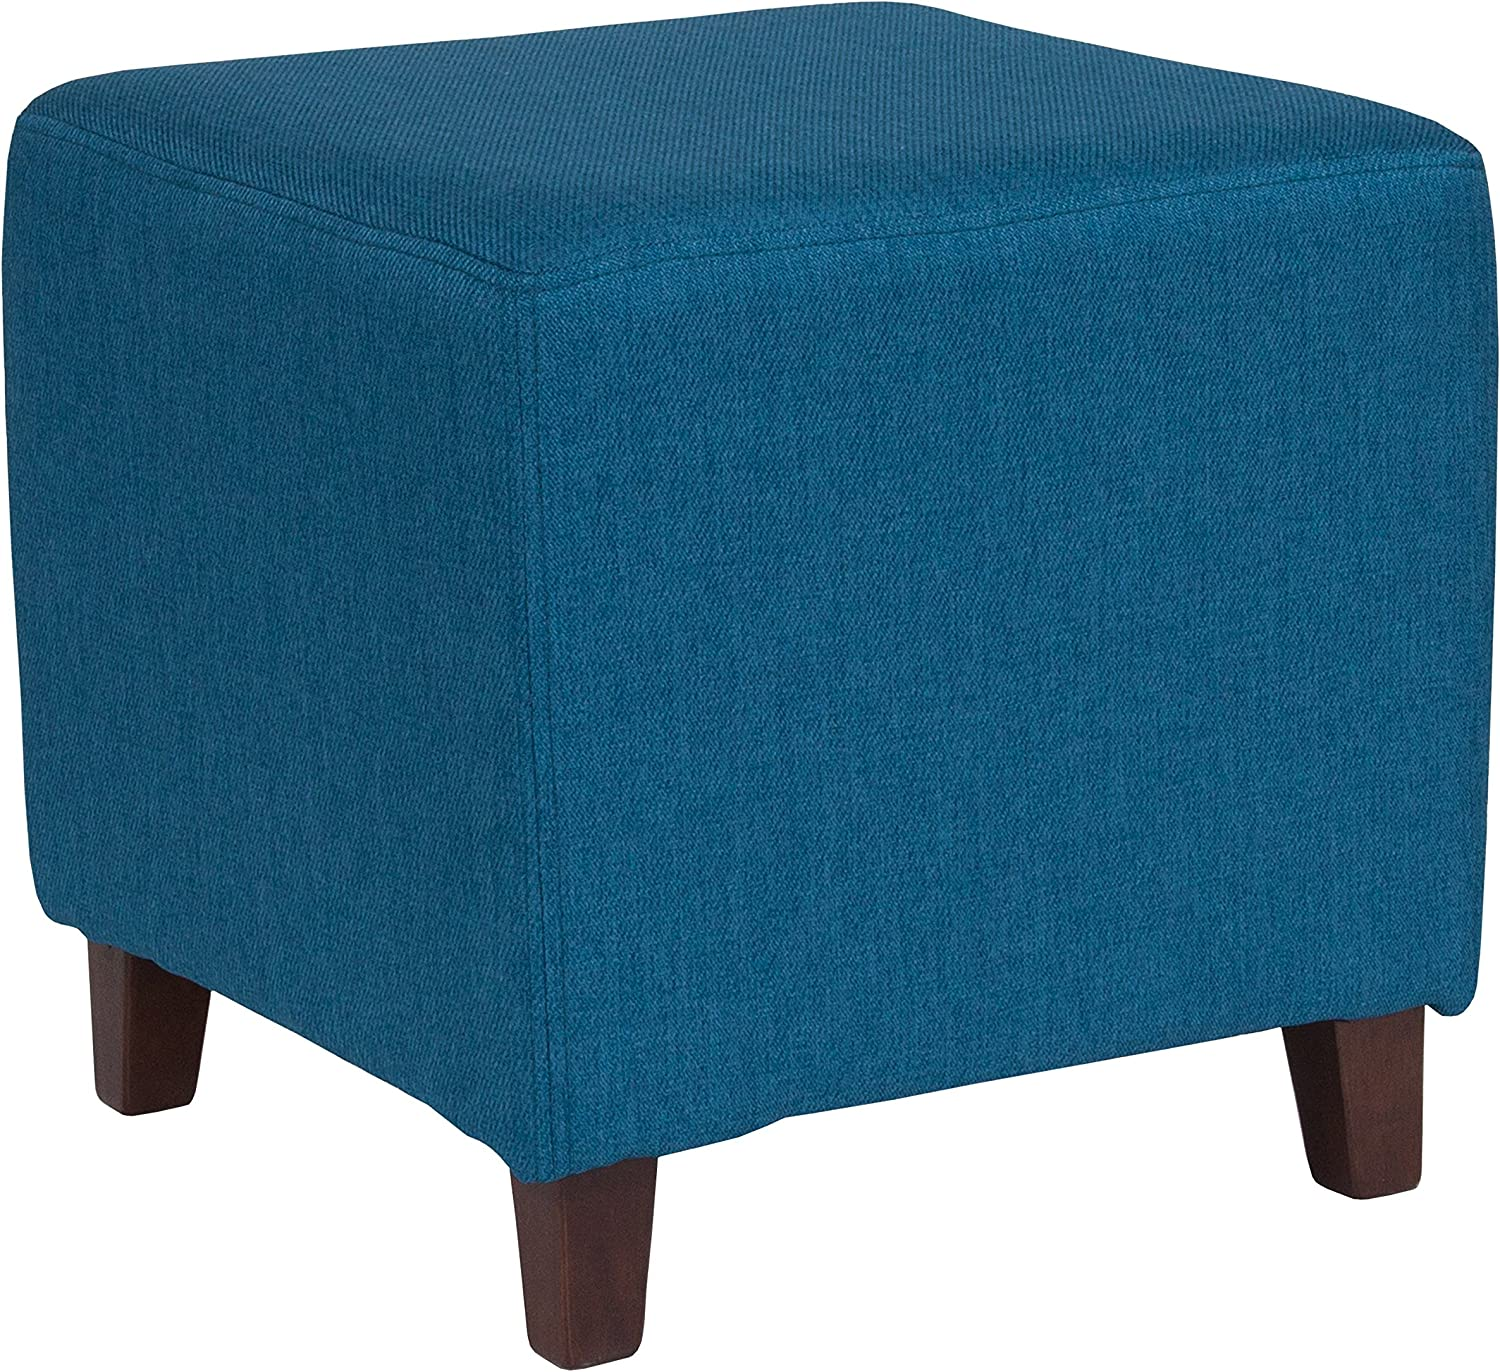 Flash Furniture Ascalon Upholstered Ottoman Pouf in Blue Fabric